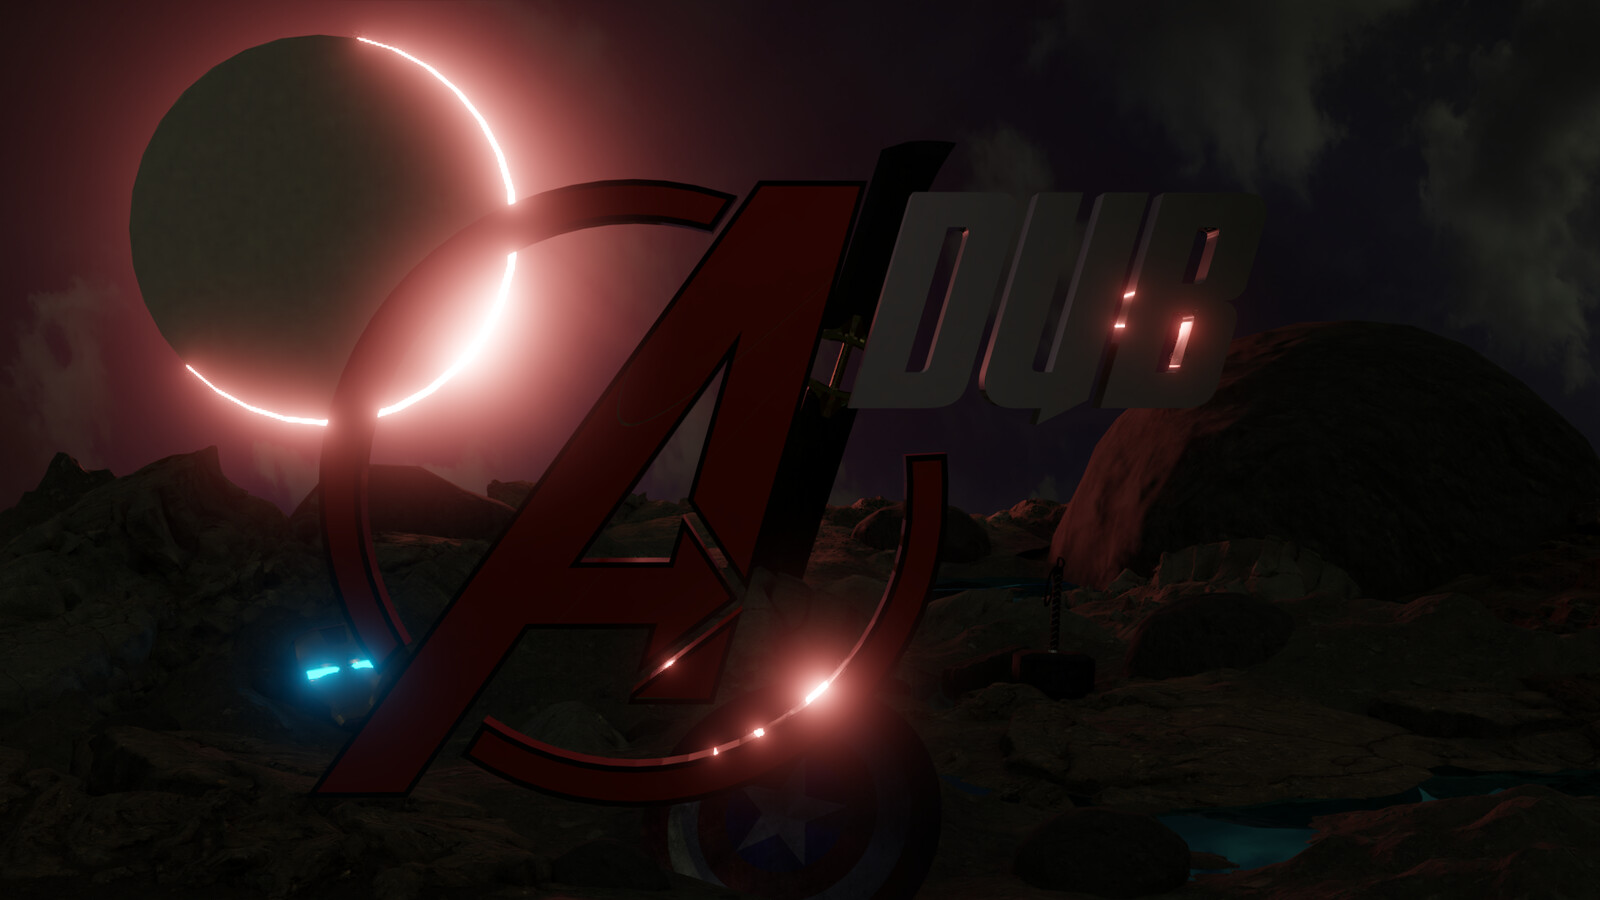 Vormir Avengers setting. Where the end battle should have been cause its so beautiful.